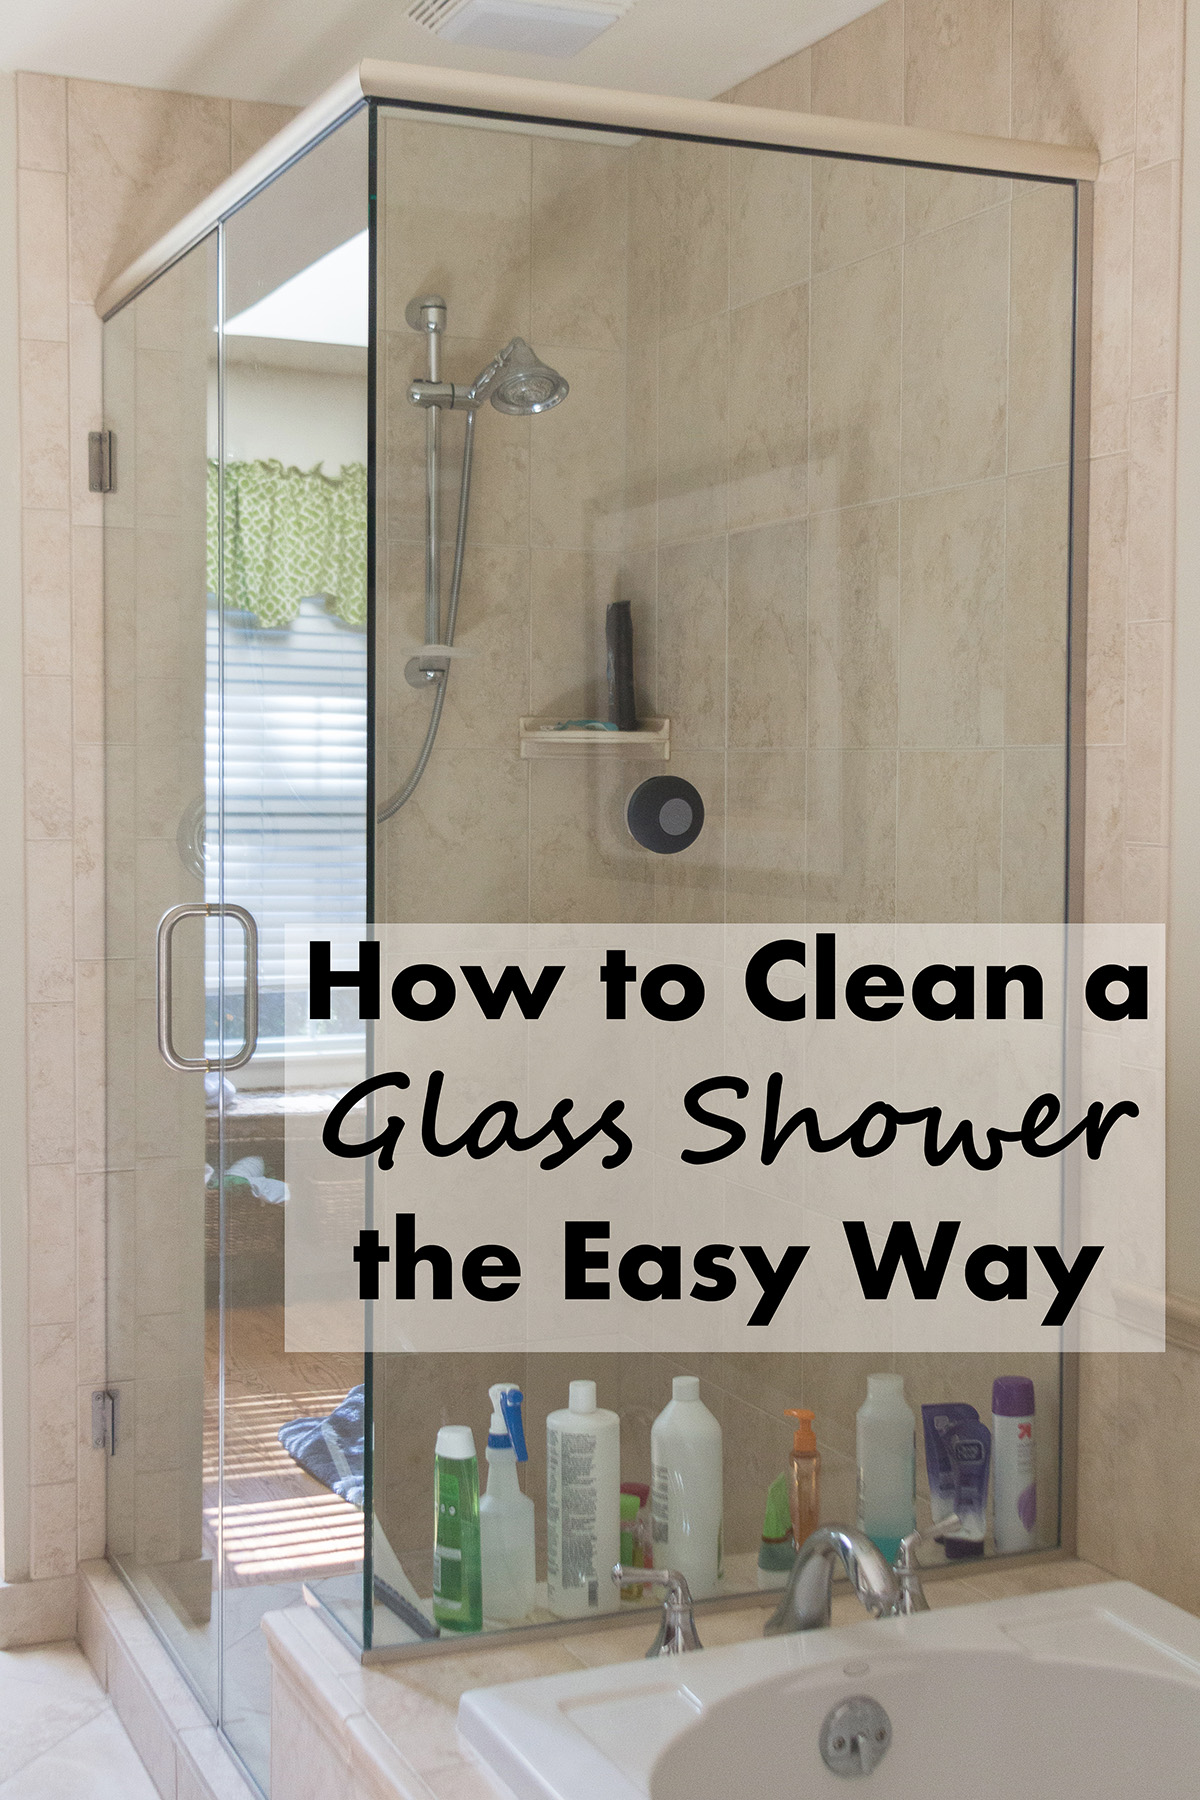 How To Clean Glass Shower Doors With Vinegar And Dawn how to clean a glass shower the easy way • rose clearfield